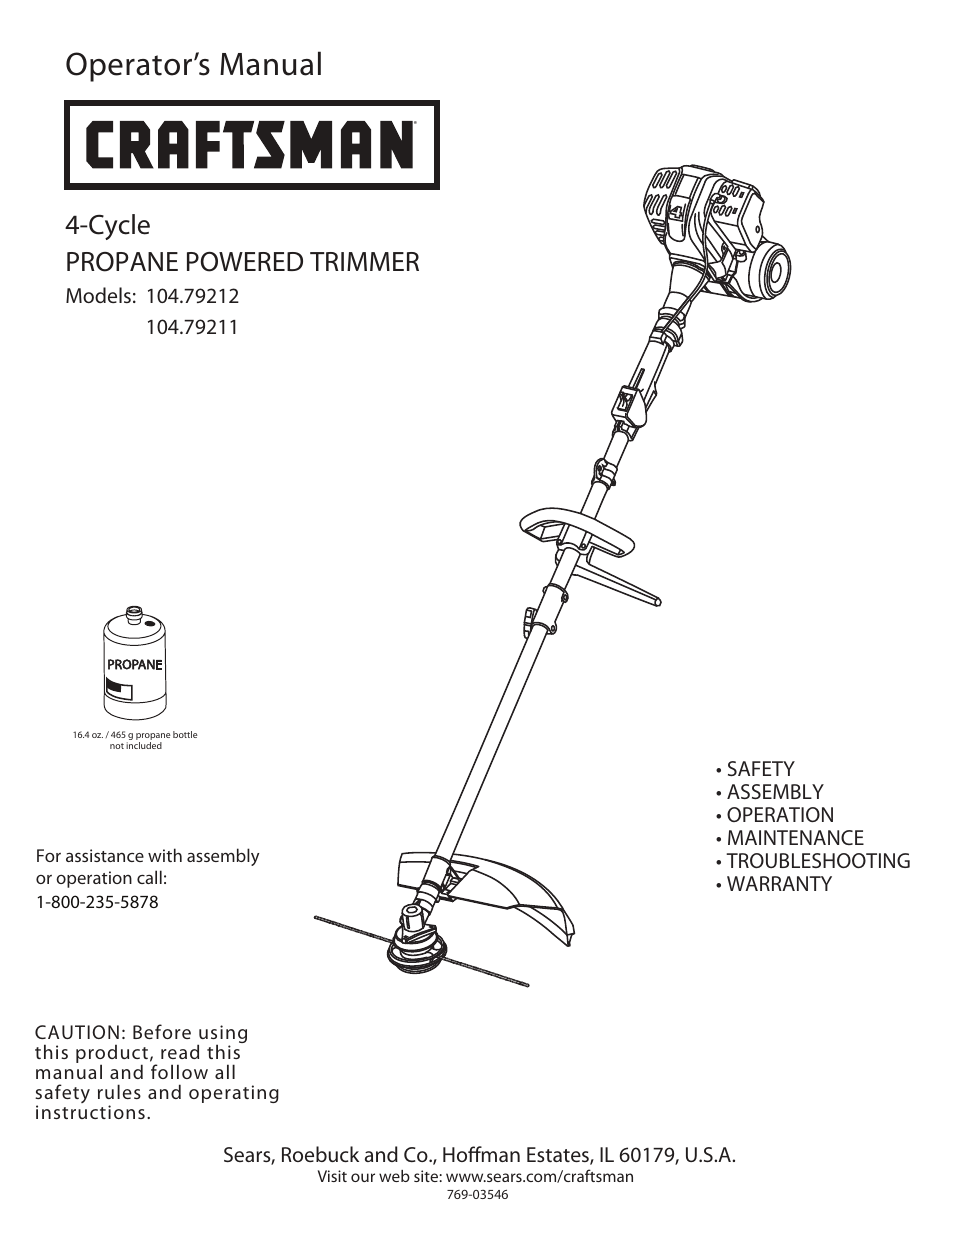 craftsman 4 cycle propane powered trimmer 104 79211 user manual 20 rh manualsdir com craftsman 4 cycle string trimmer manual craftsman 4 cycle trimmer parts diagram